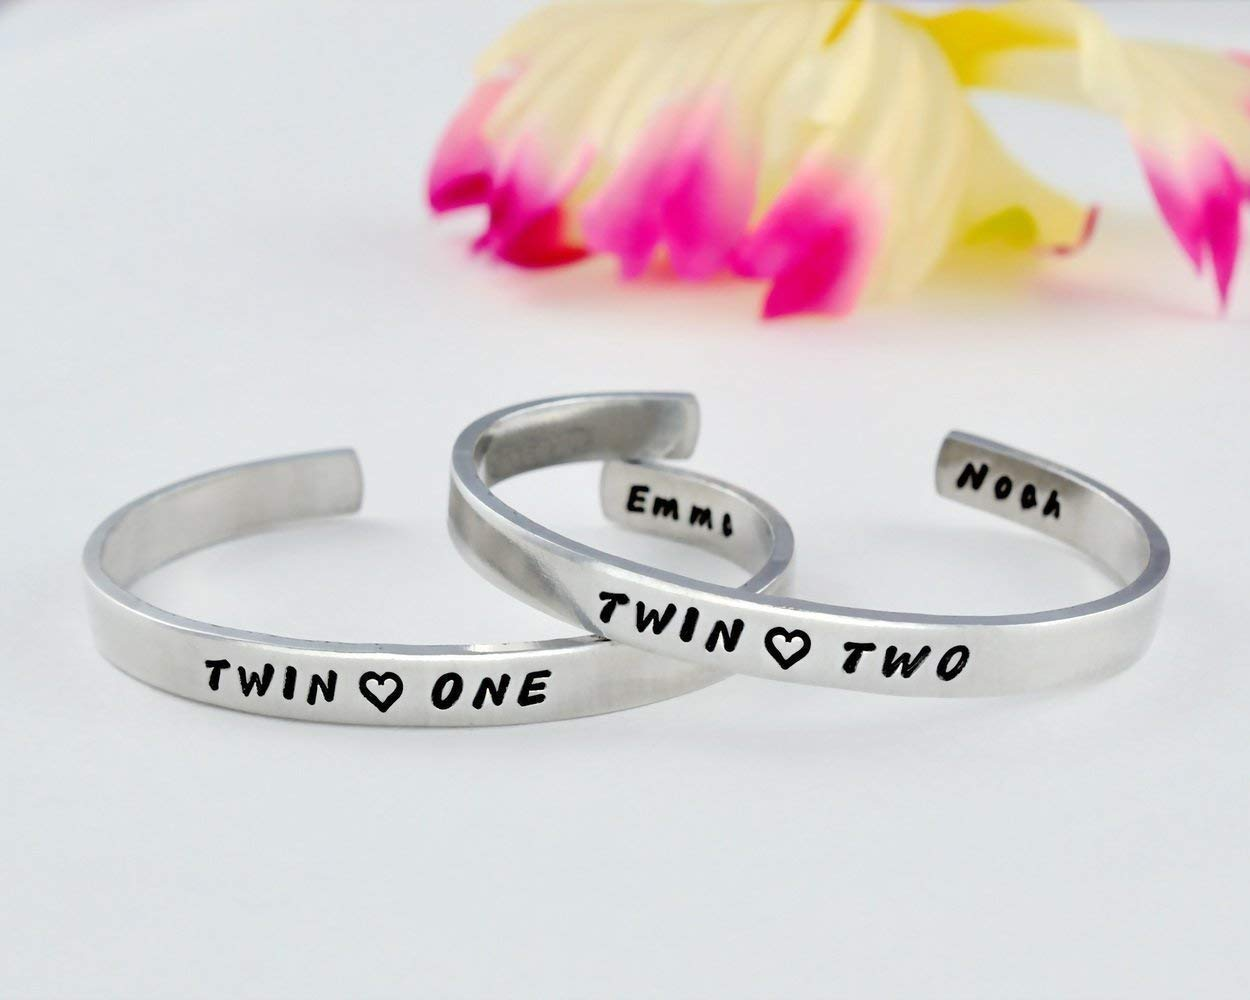 Copper or Brass Cuff Bracelets Set of 2 Best Friends BFF Besties Personalized Gift Twin Sisters Matching Pair Bangle Name Initials Customized Gift Twin Two Twin One Hand Stamped Aluminum